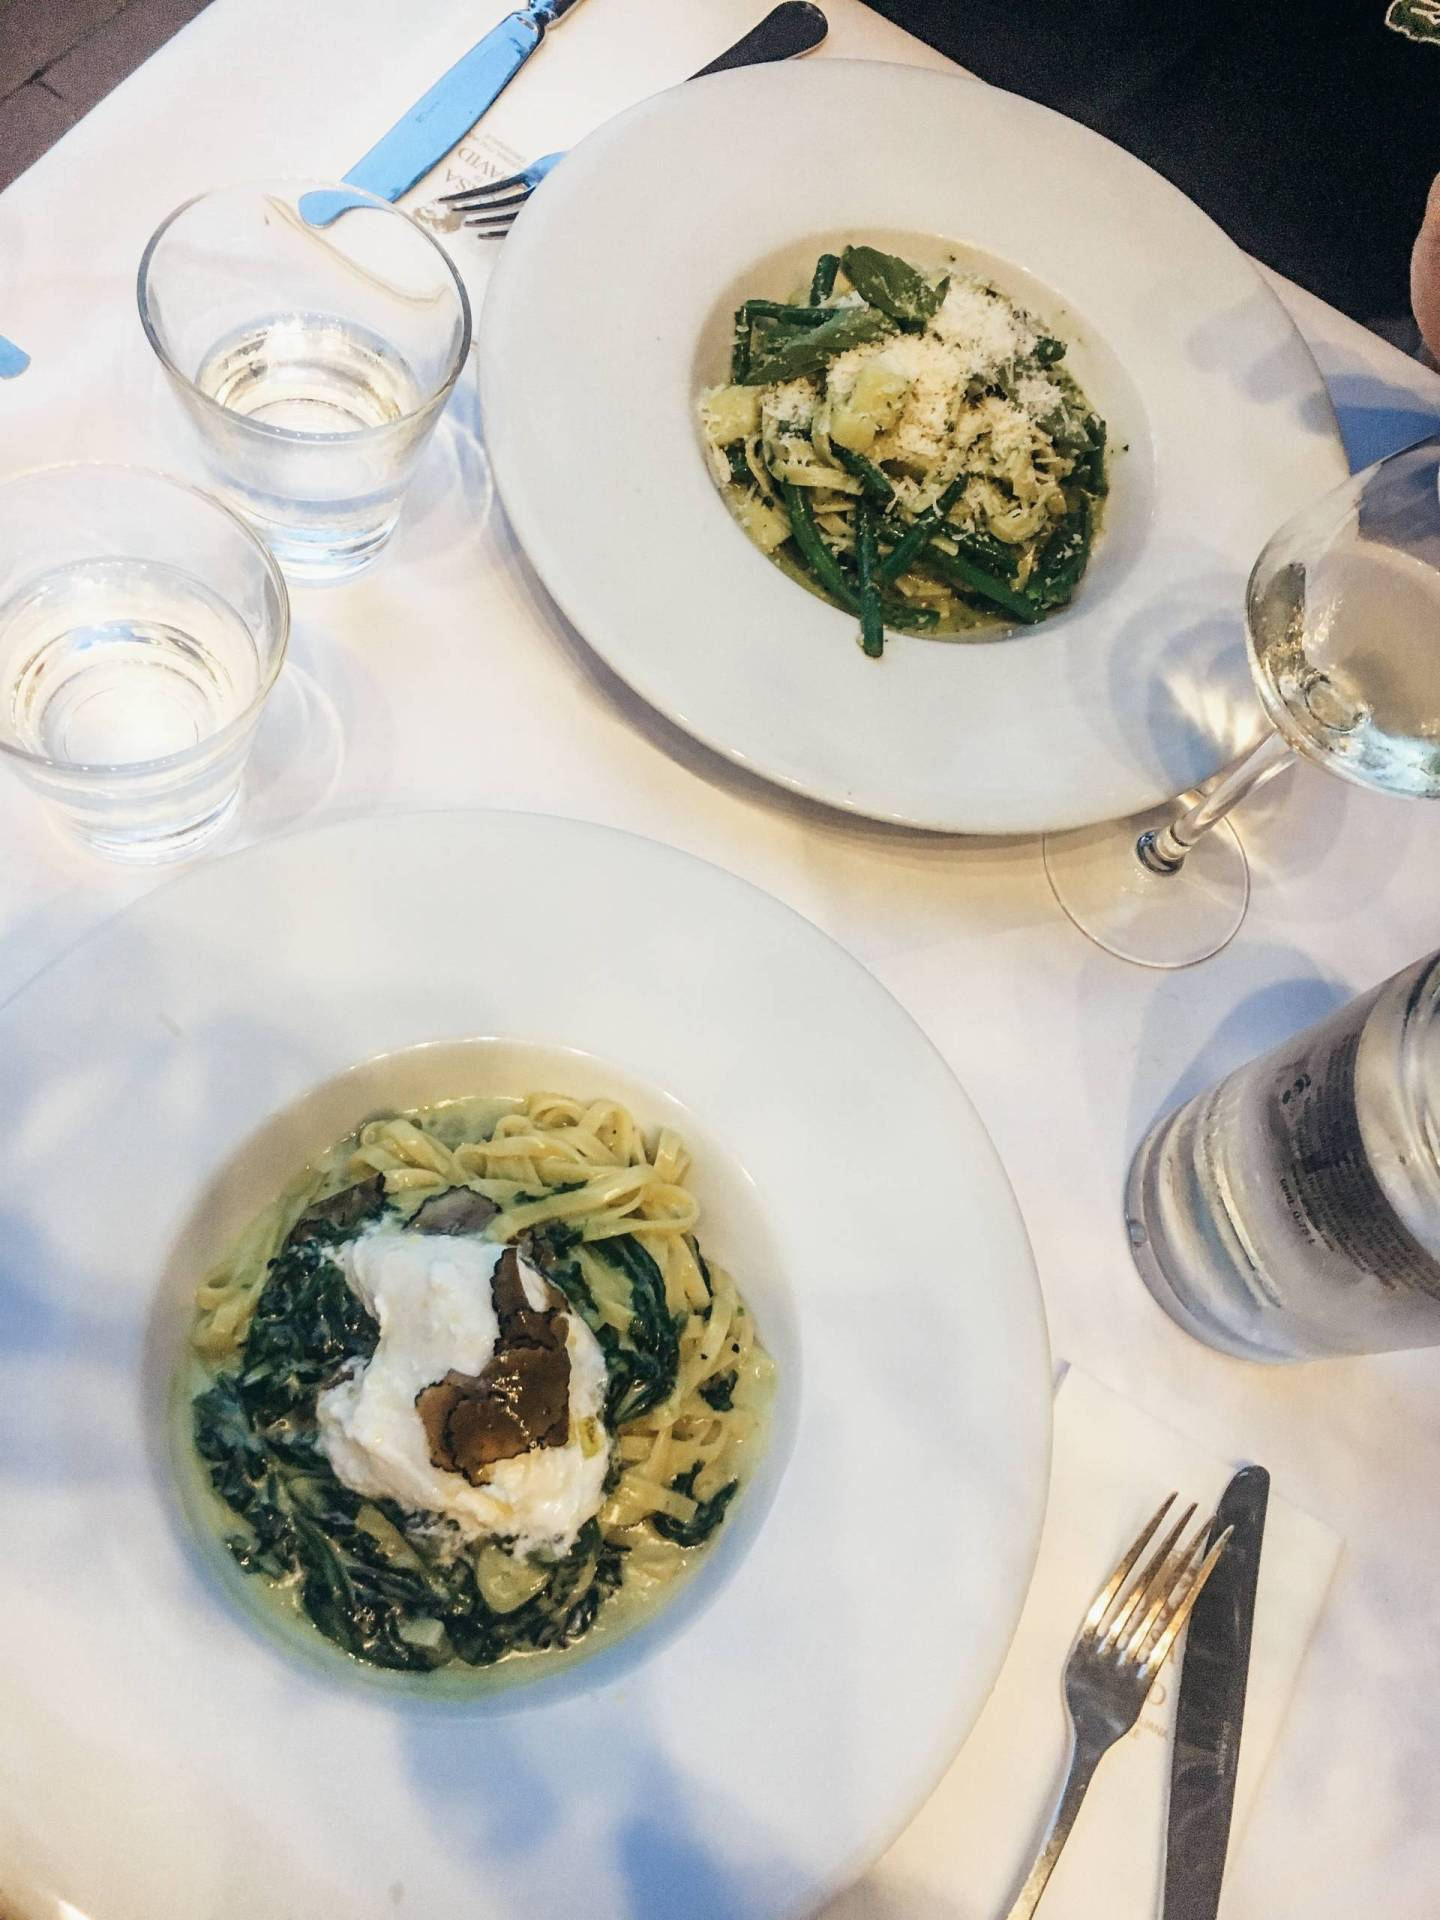 Fresh pasta al fresco overlooking a canal? Yes please! Click through for everywhere we ate while in Amsterdam, including this night at Casa di David.